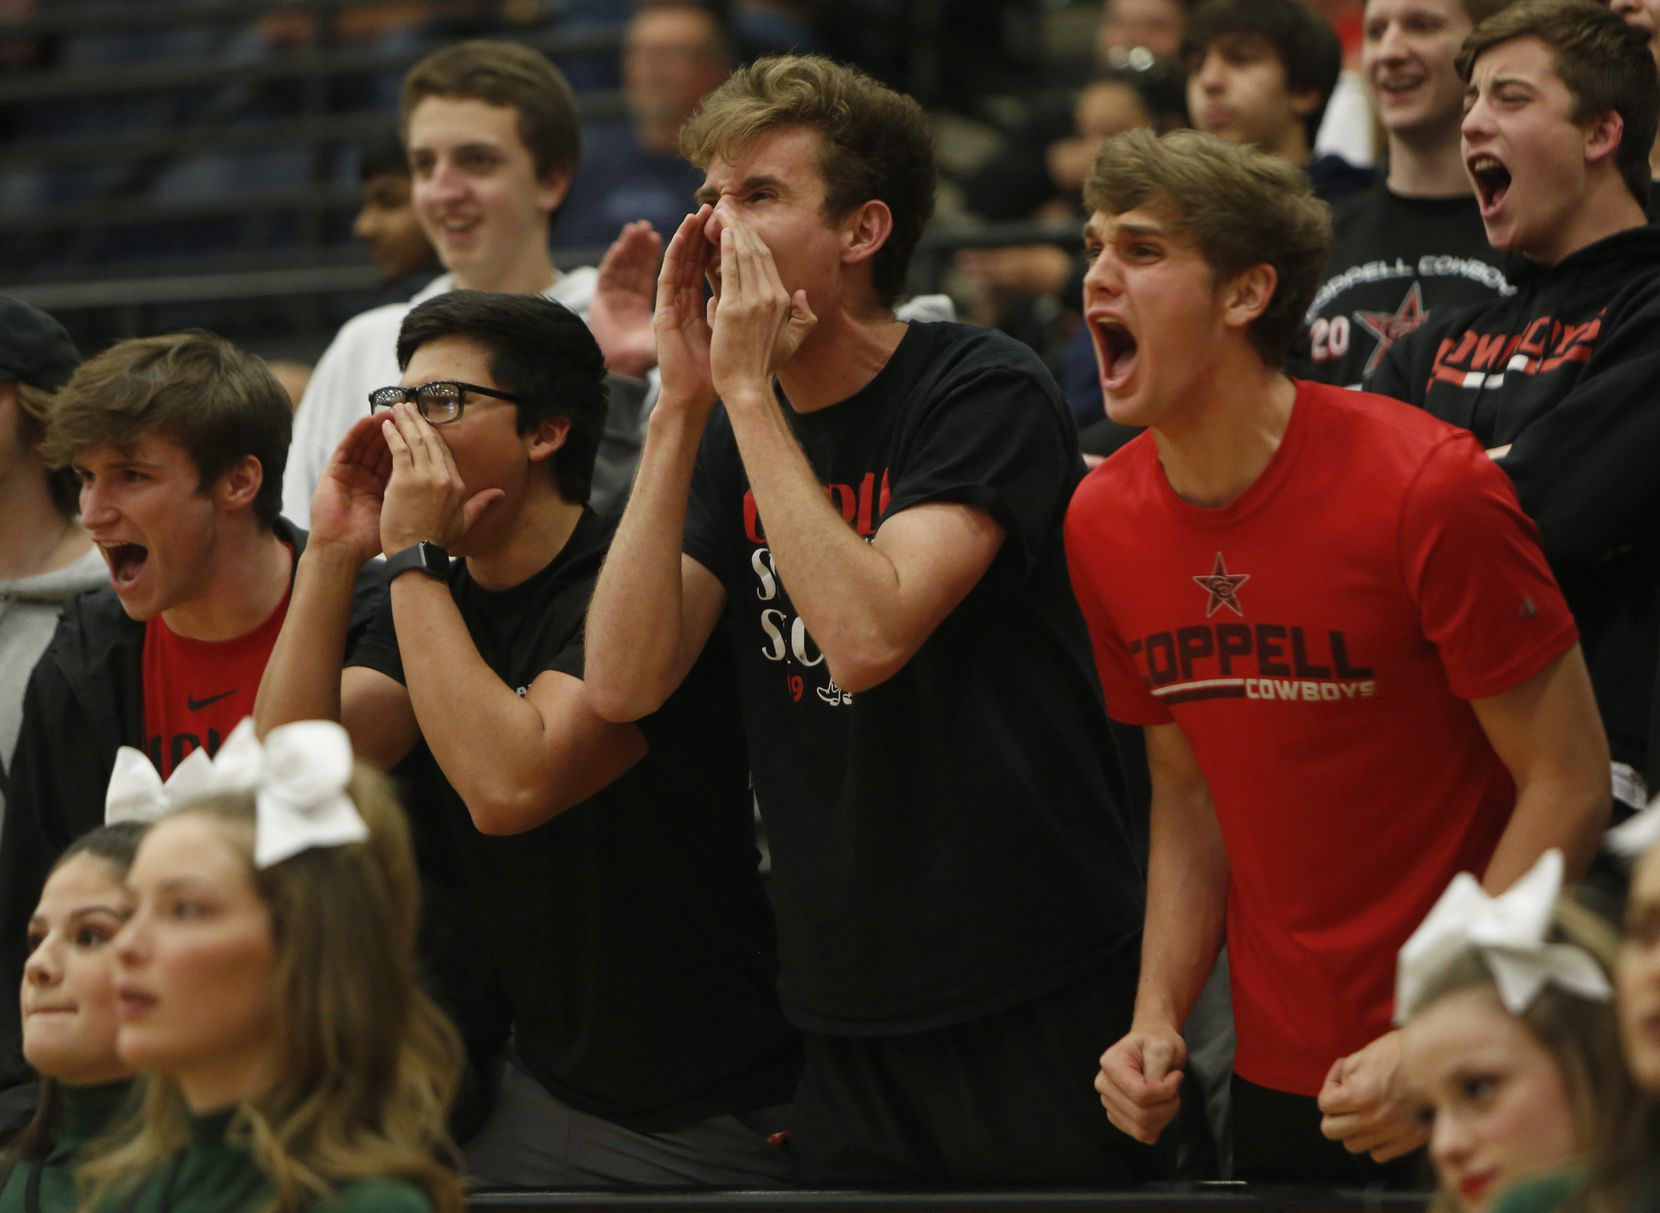 Coppell students voice their fan support during the first half against Waxahachie. The two teams played their Class 6A area-round boys basketball playoff game at Mansfield Timberview High School in Arlington on February 28, 2020.